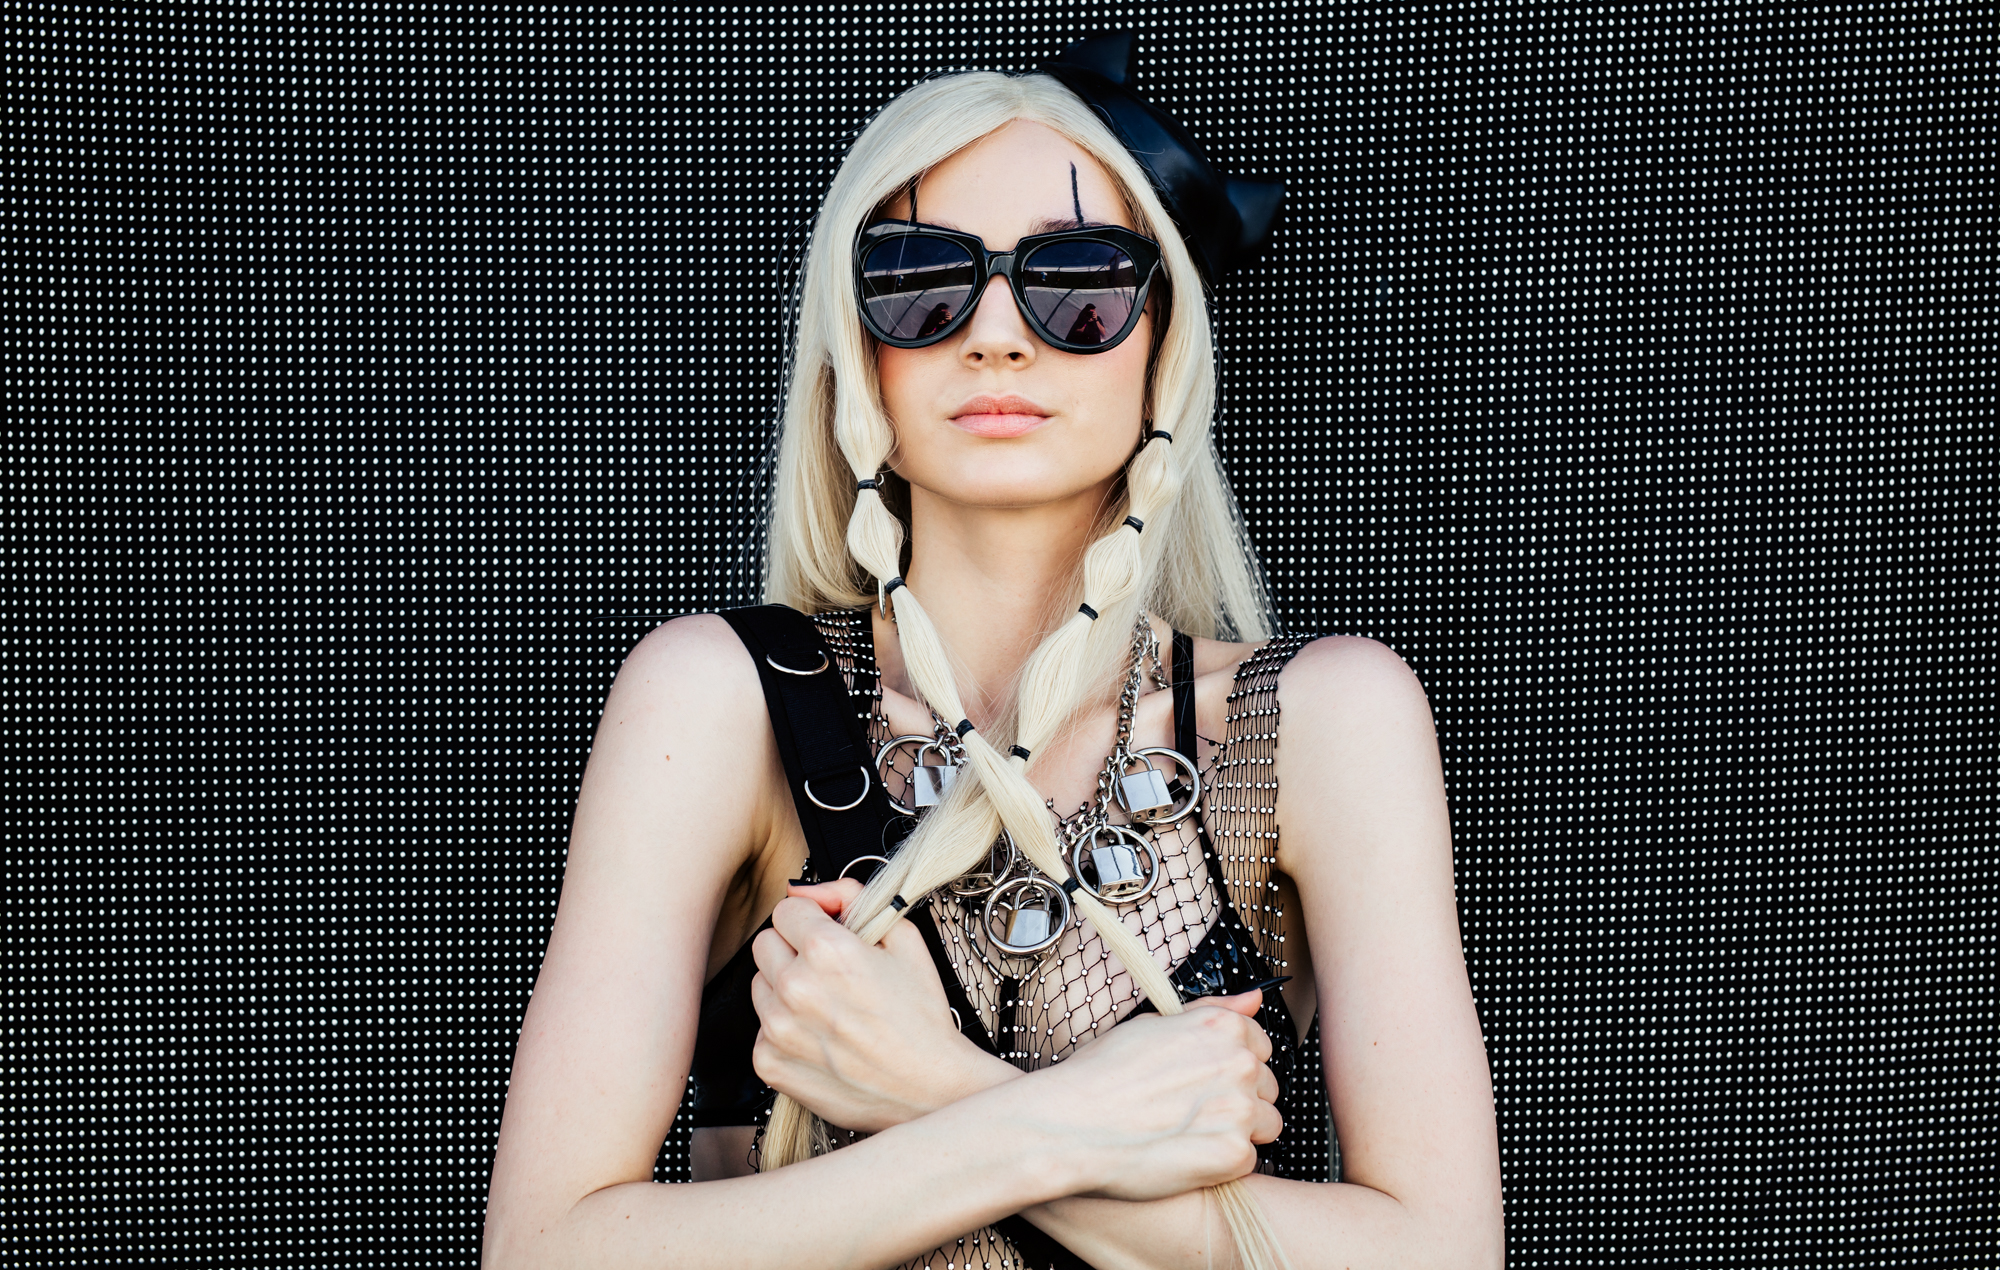 Poppy set to embark on 36-date 'I Disagree' tour in 2020